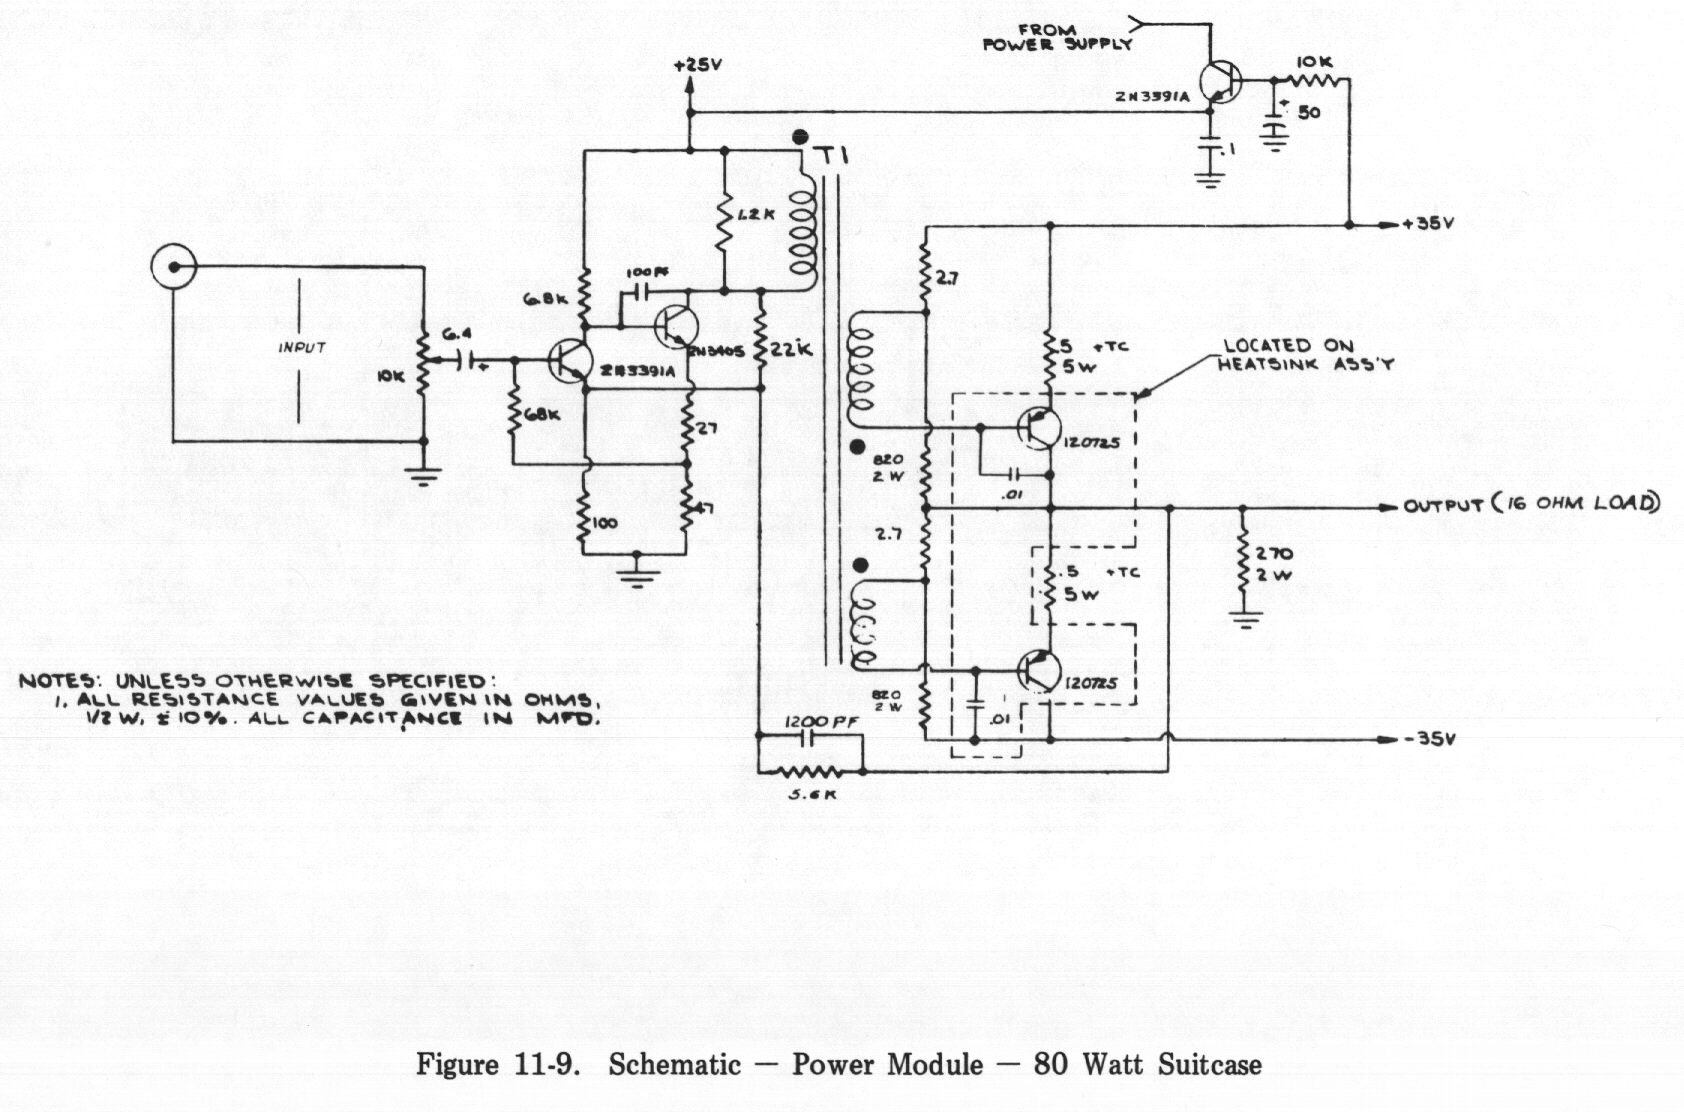 chapter 11 diagrams, schematics and pictorials Fender P Bass Wiring Diagram at Fender Rhodes Wiring Diagram